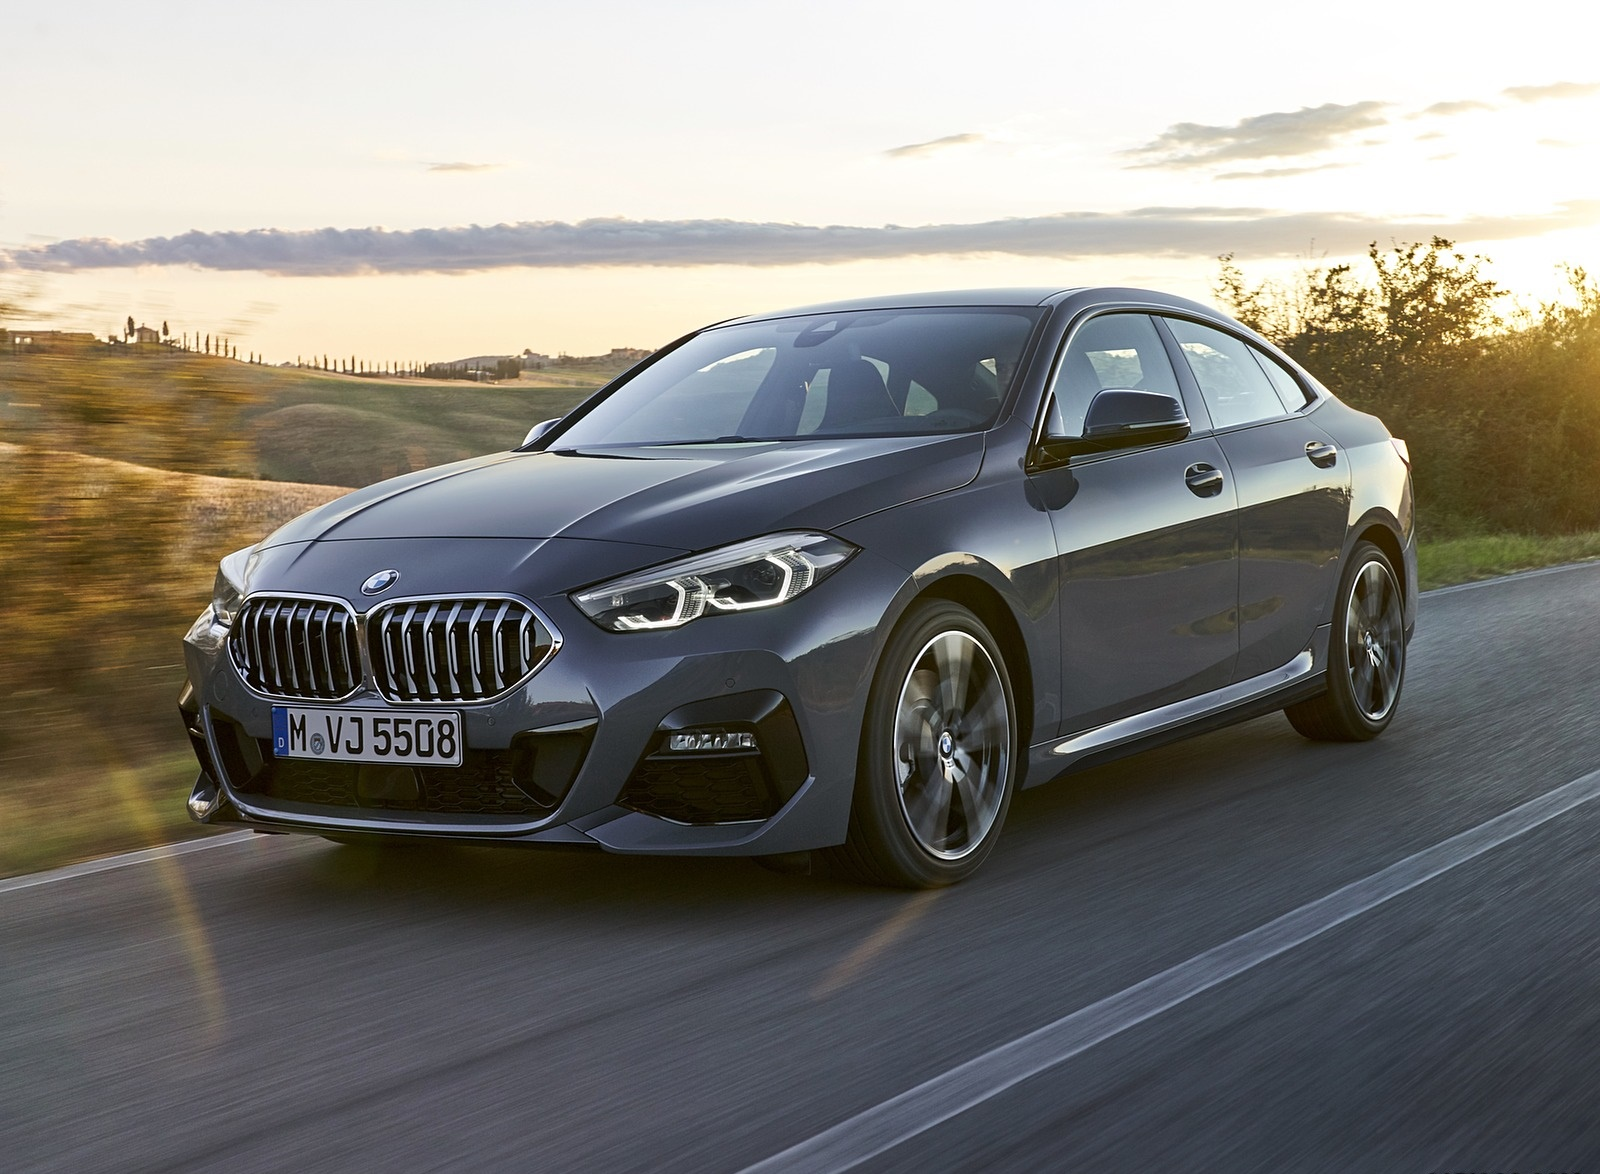 2020 BMW 2 Series 220d Gran Coupe M Sport (Color: Storm Bay Metallic) Front Three-Quarter Wallpapers (5)